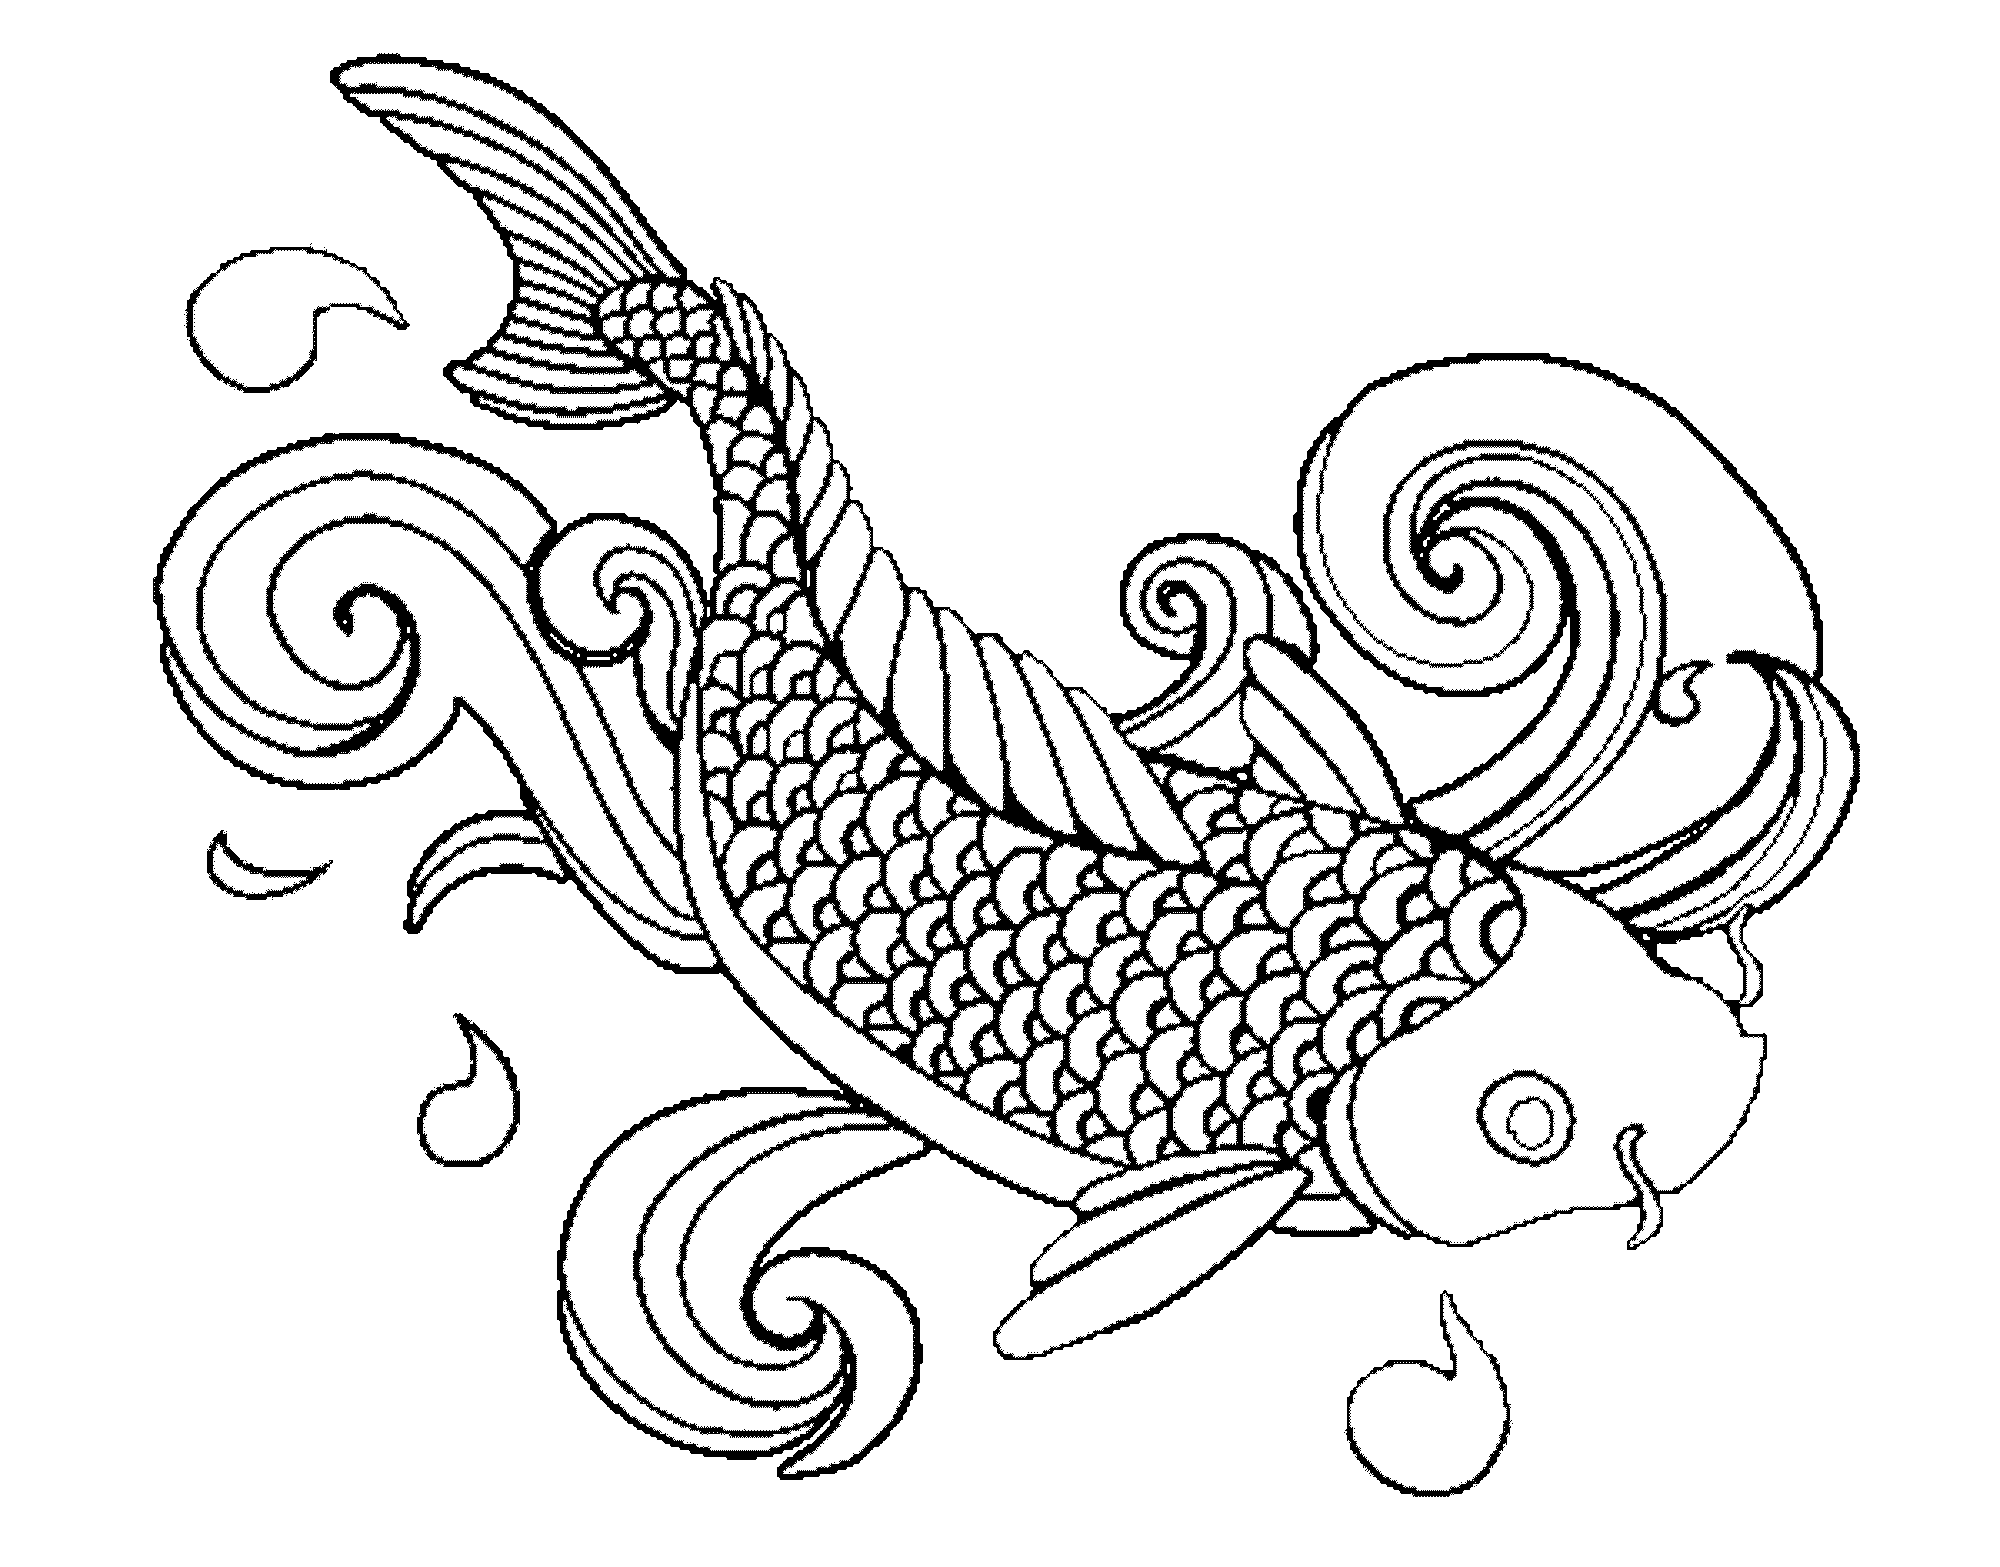 coloring page fish - Printable Kids Colouring Pages | Coloring Pages ...